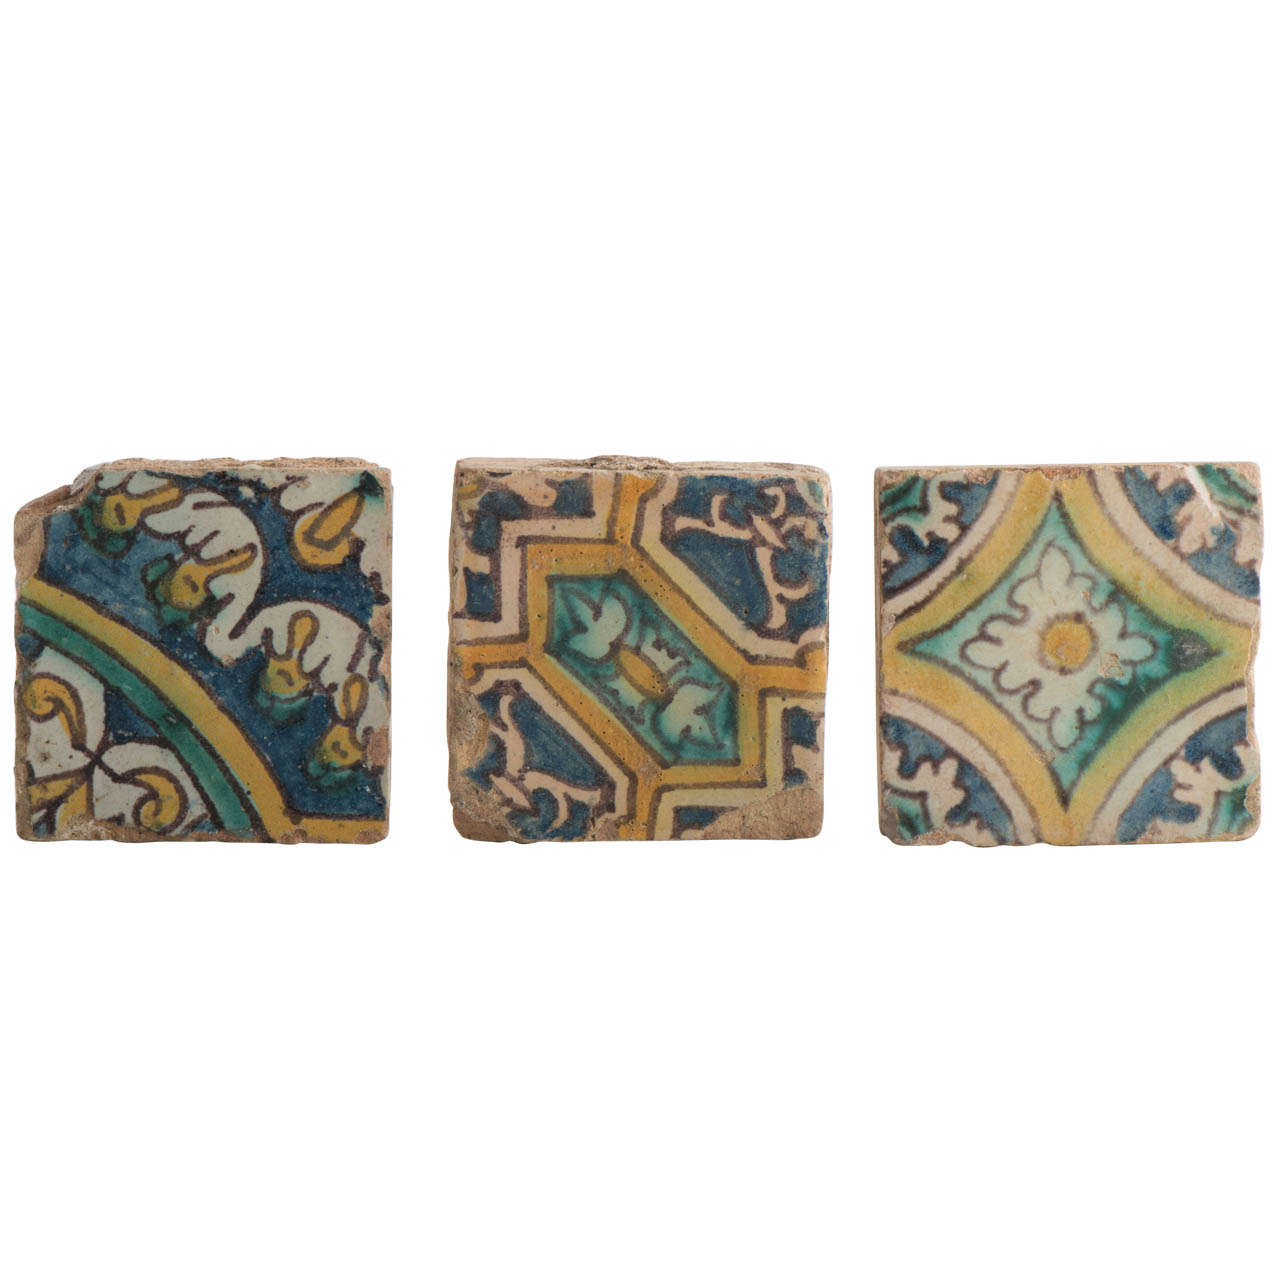 Early floor tiles For Sale